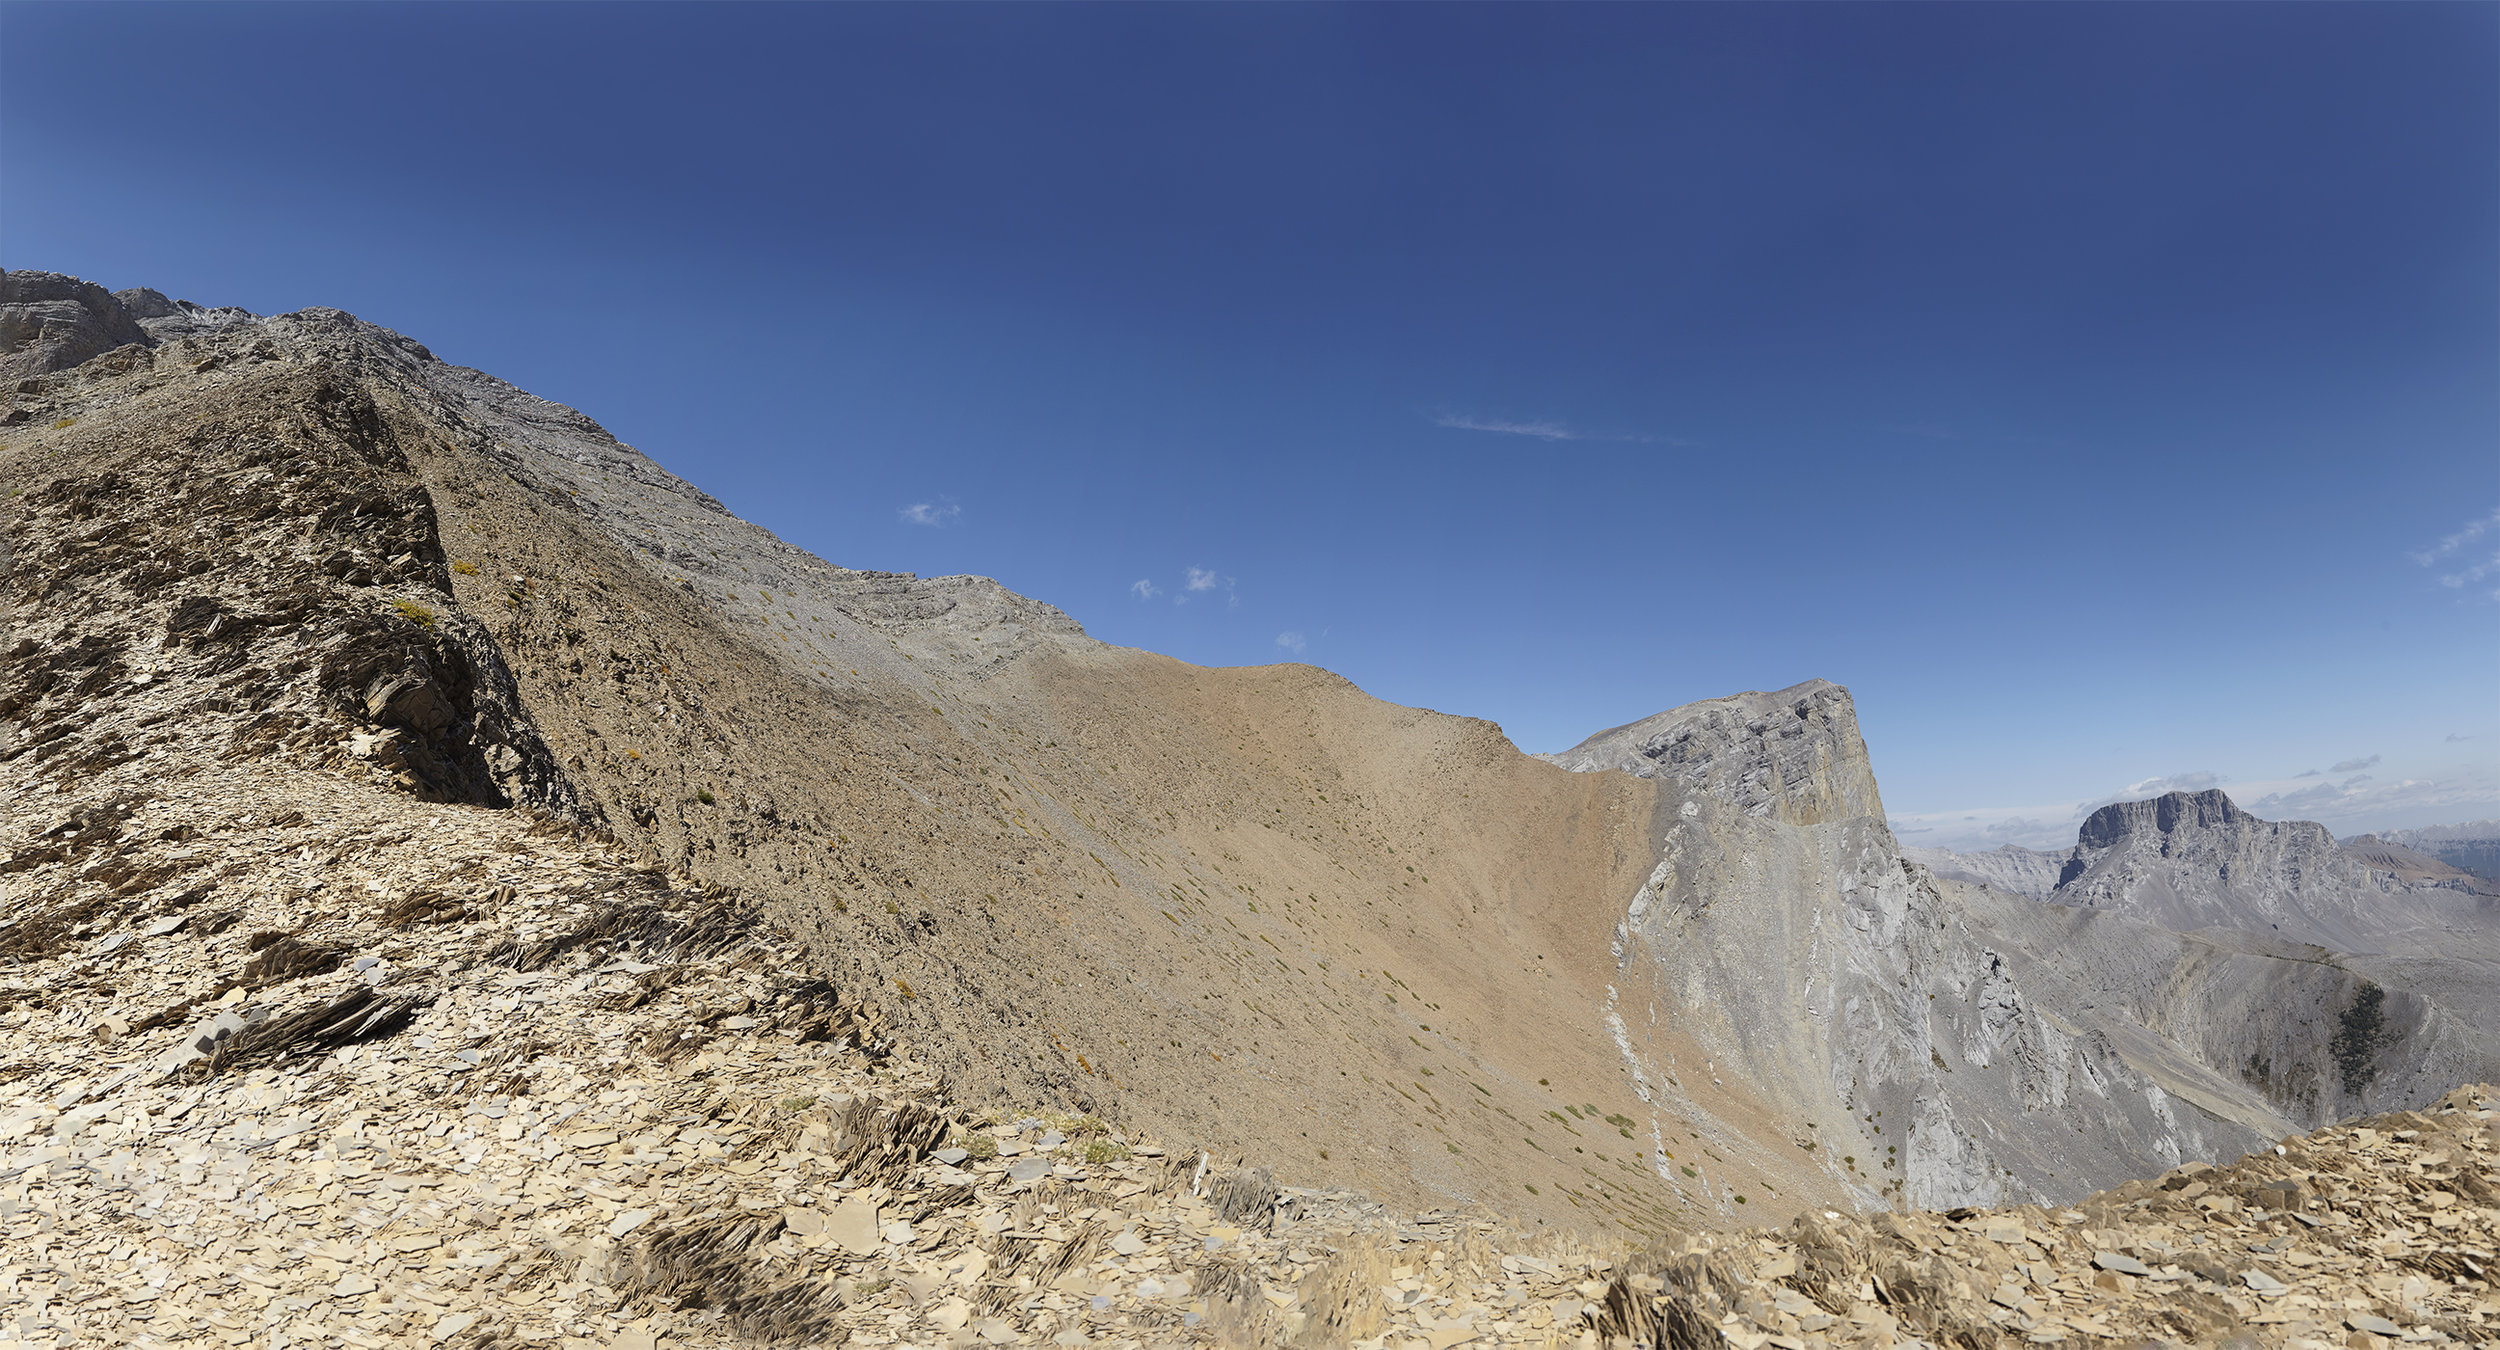 A panorama taken from the col, where we turned around. The ascent route would climb to the outlier on the left before following the ridge to the true summit of Mount Romulus (right of centre). Mount Remus is in the peak farthest to the right.